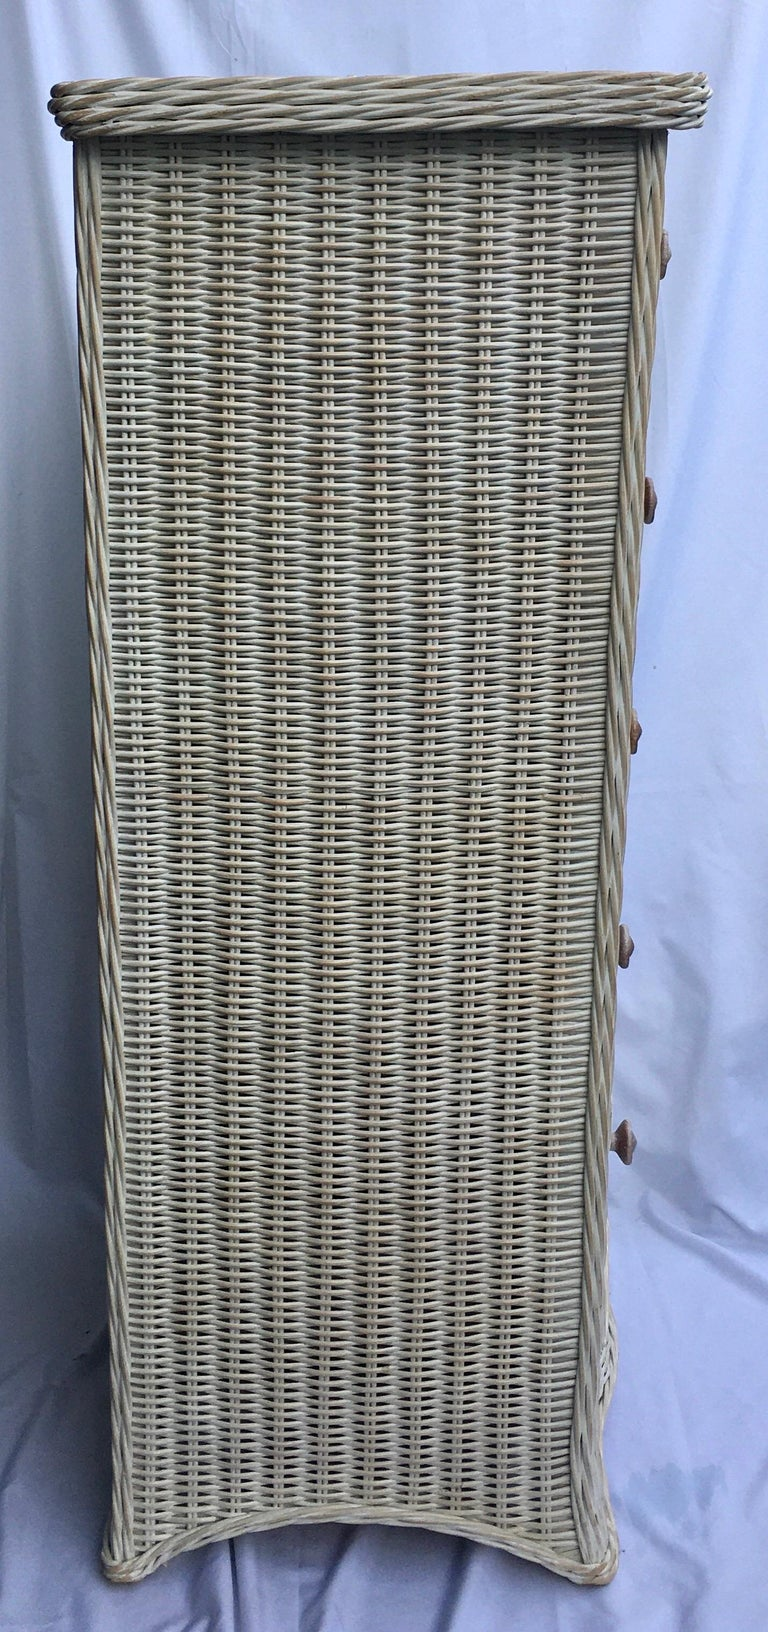 Mid-Century Modern Tall Wicker Curved Serpentine Lingerie Chest of Drawers For Sale